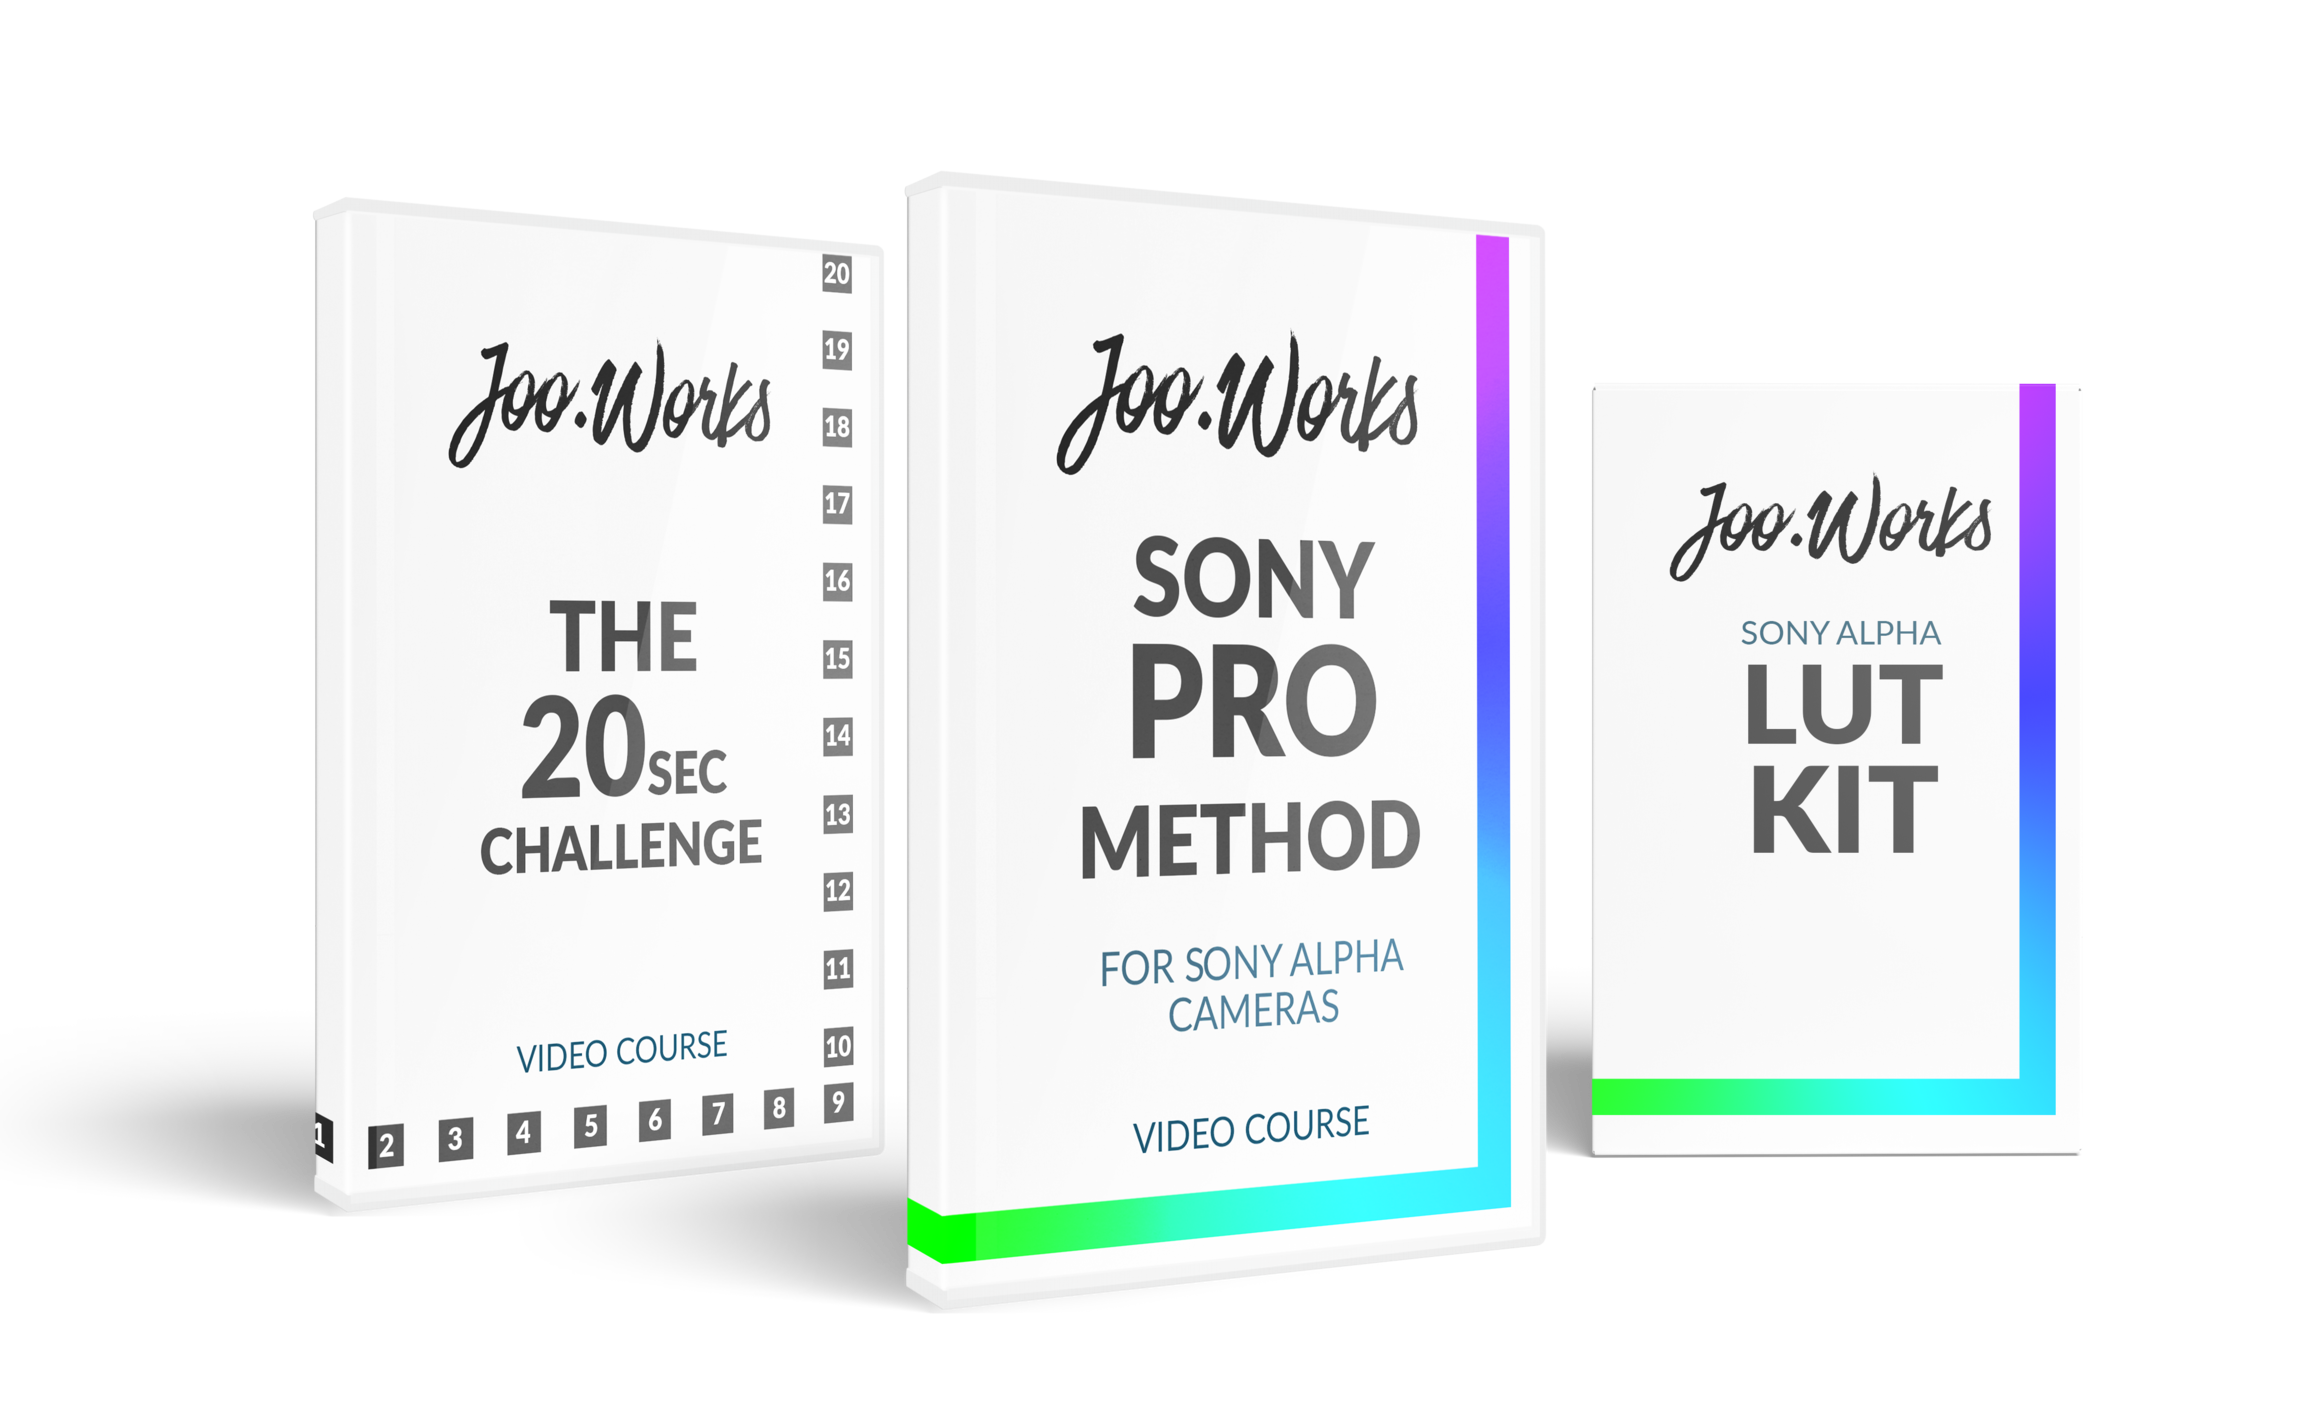 The Sony Pro Method